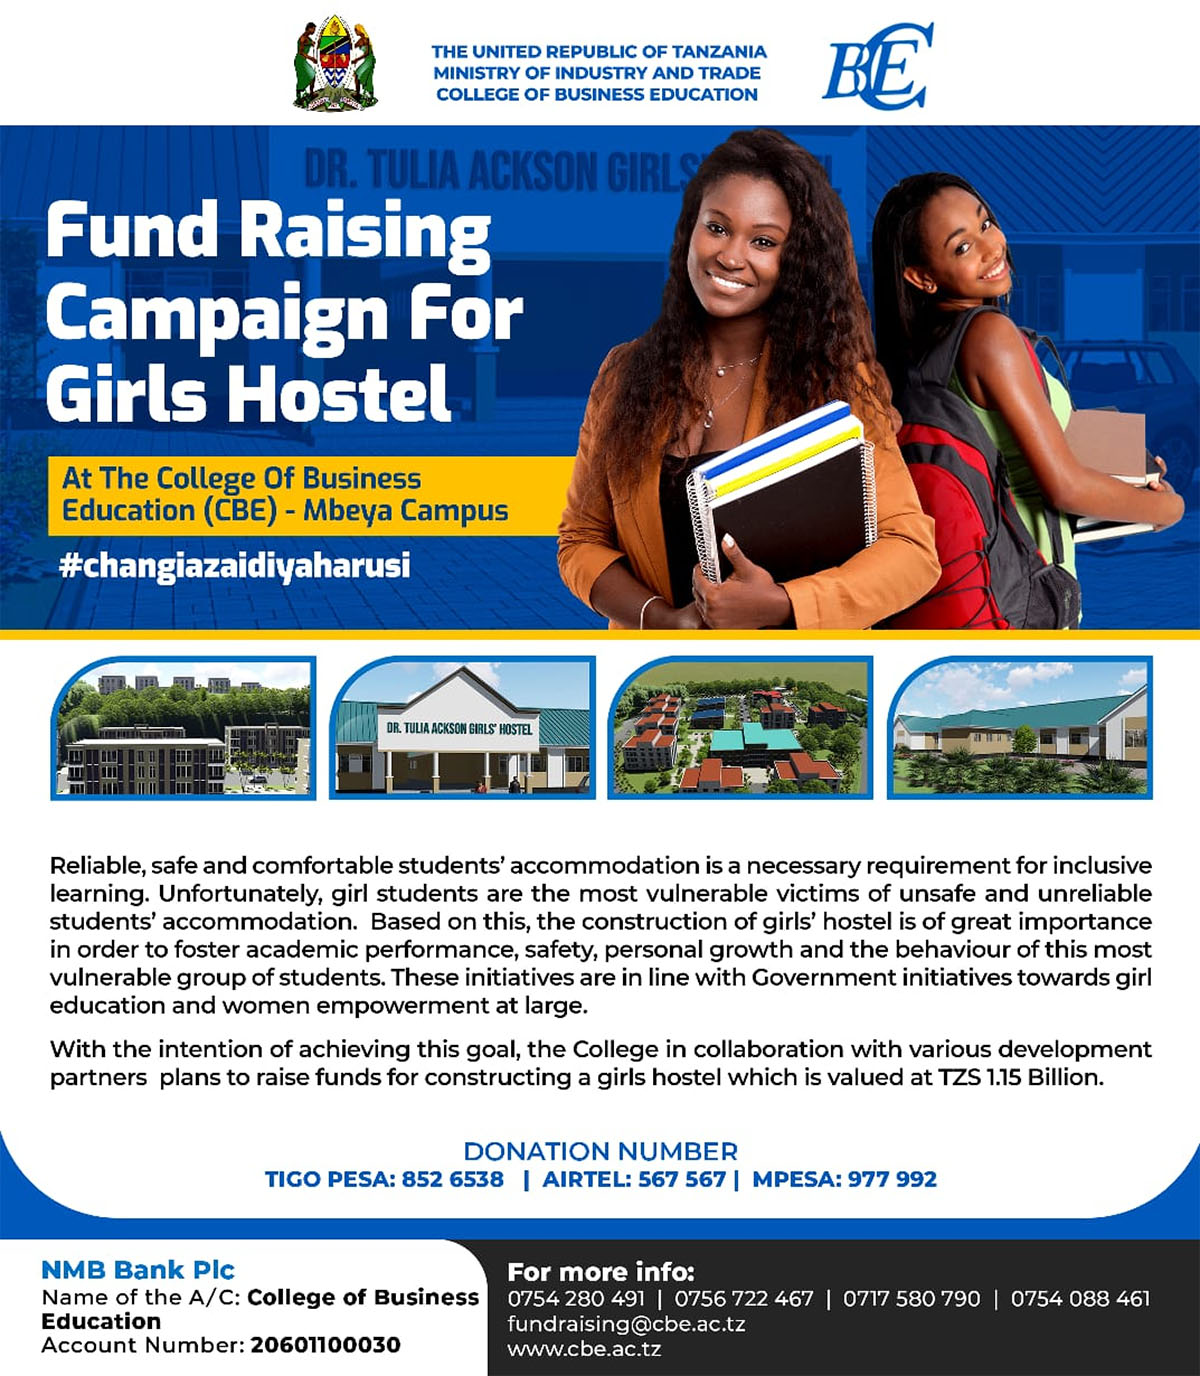 College-of-Business-Education-Fund-Raising-Campaign-forGirls-Hostel